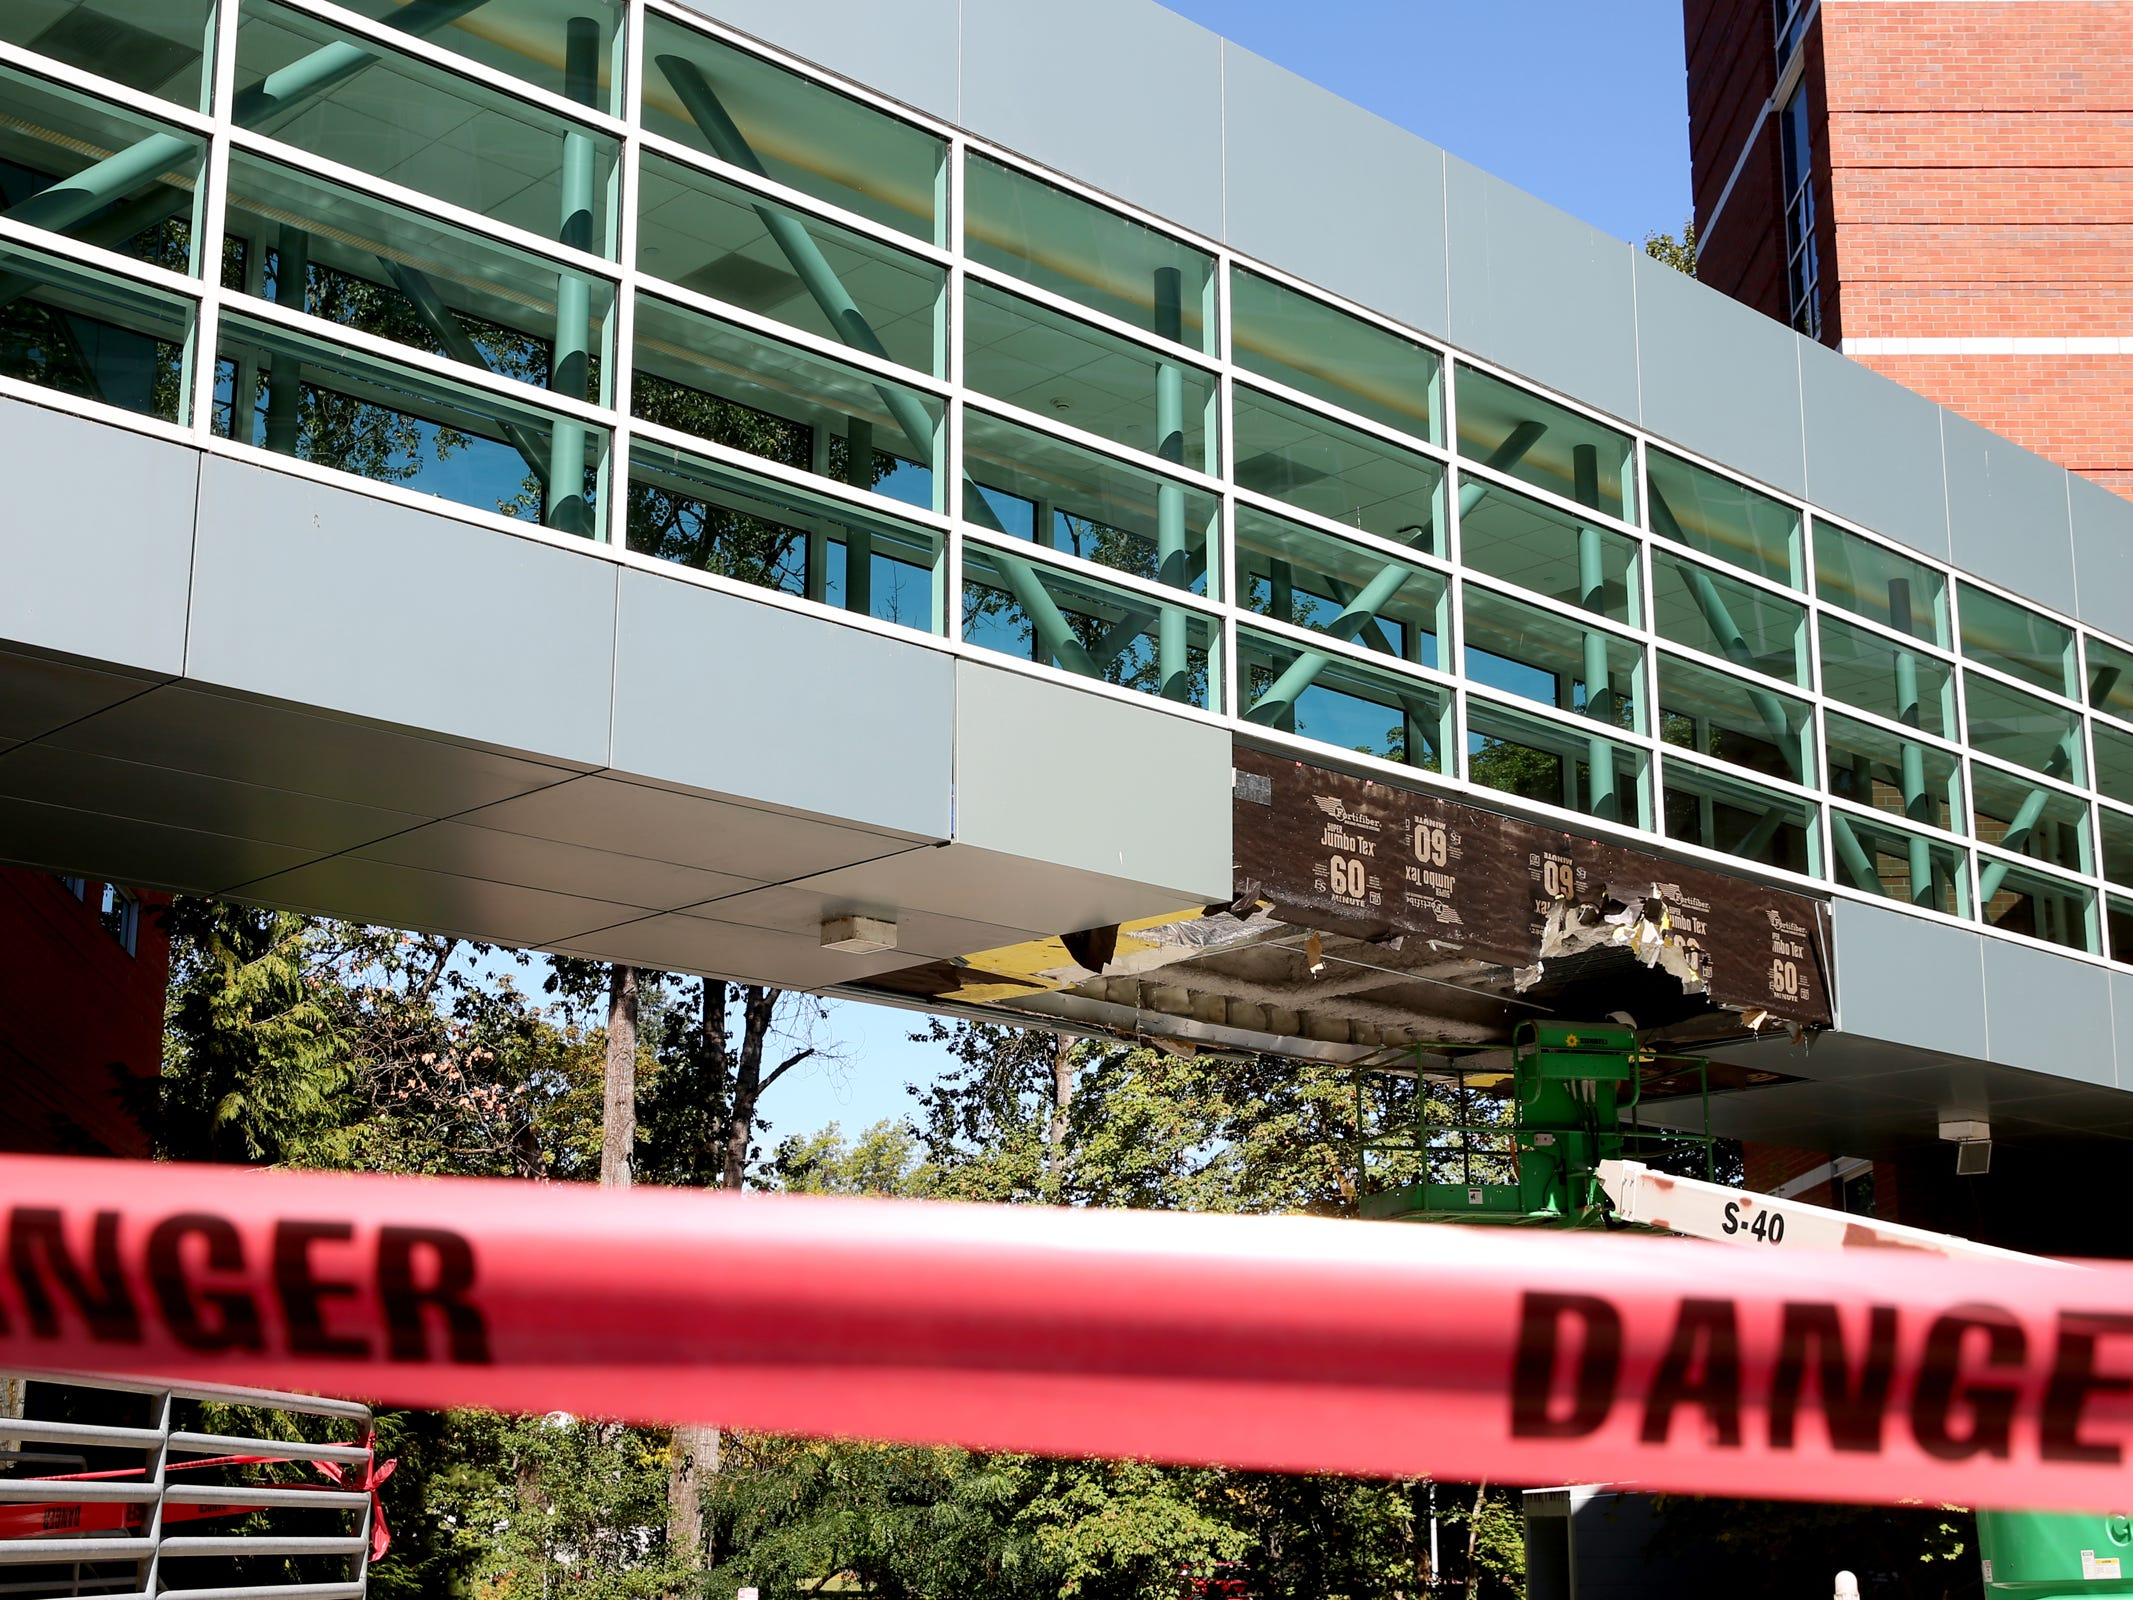 A skybridge at Salem Health is damaged after truck ran into it on Thursday, Sep. 20, 2018. The damage was determined cosmetic only, so the skybridge is still open to walk across.